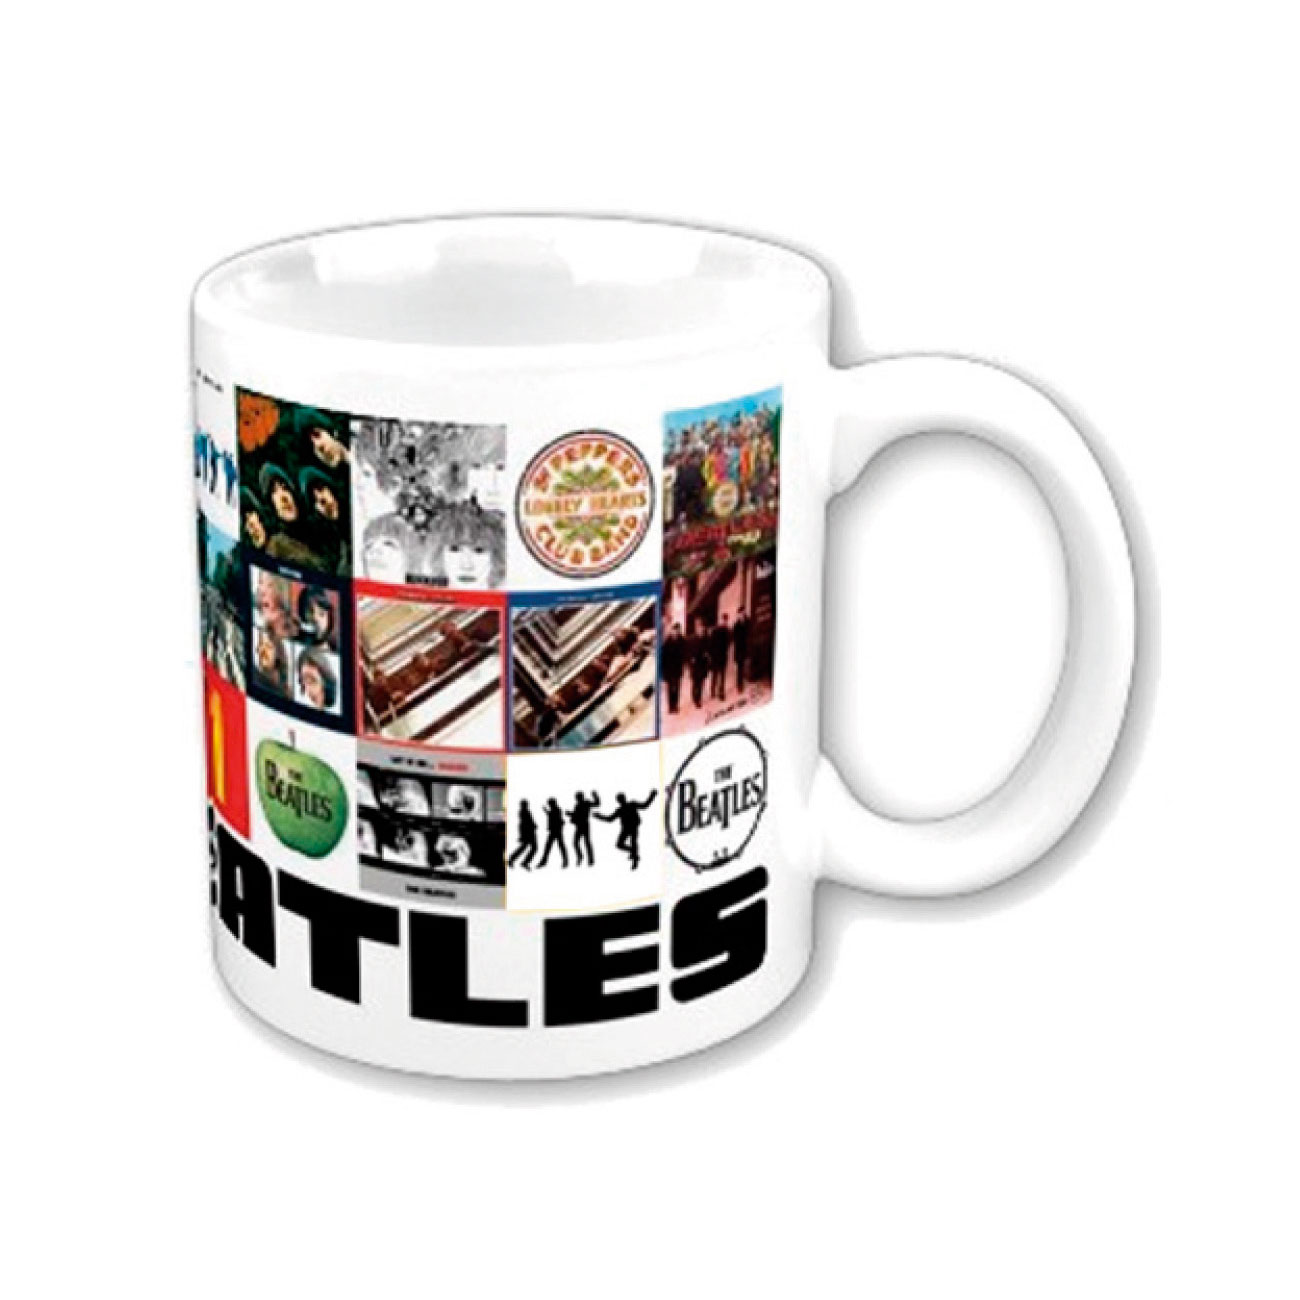 Beatles Mug Chronology Boxed. Emi Music officially licensed product.